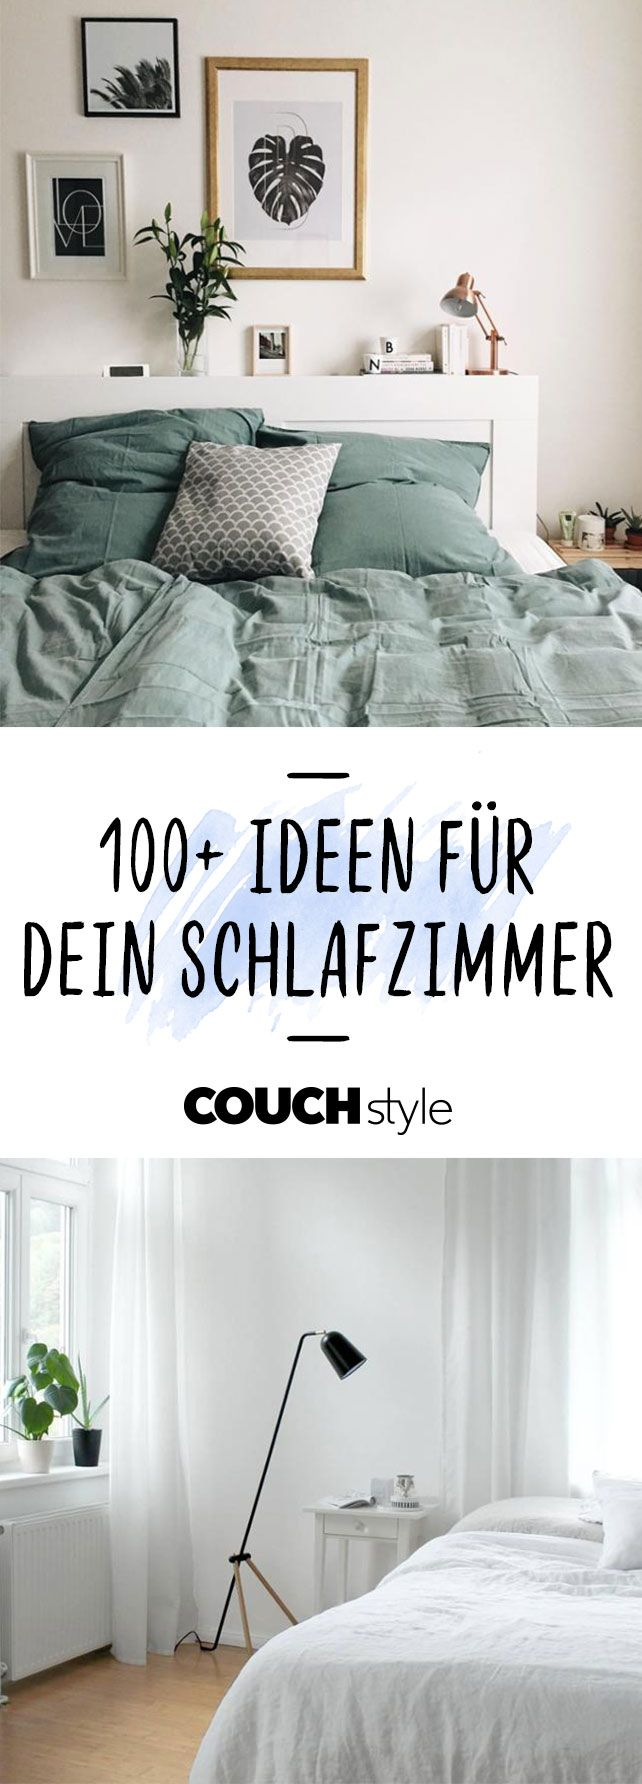 schlafzimmer bilder m bel f r die wohlf hloase schlafzimmer pinterest bettwaesche bett. Black Bedroom Furniture Sets. Home Design Ideas